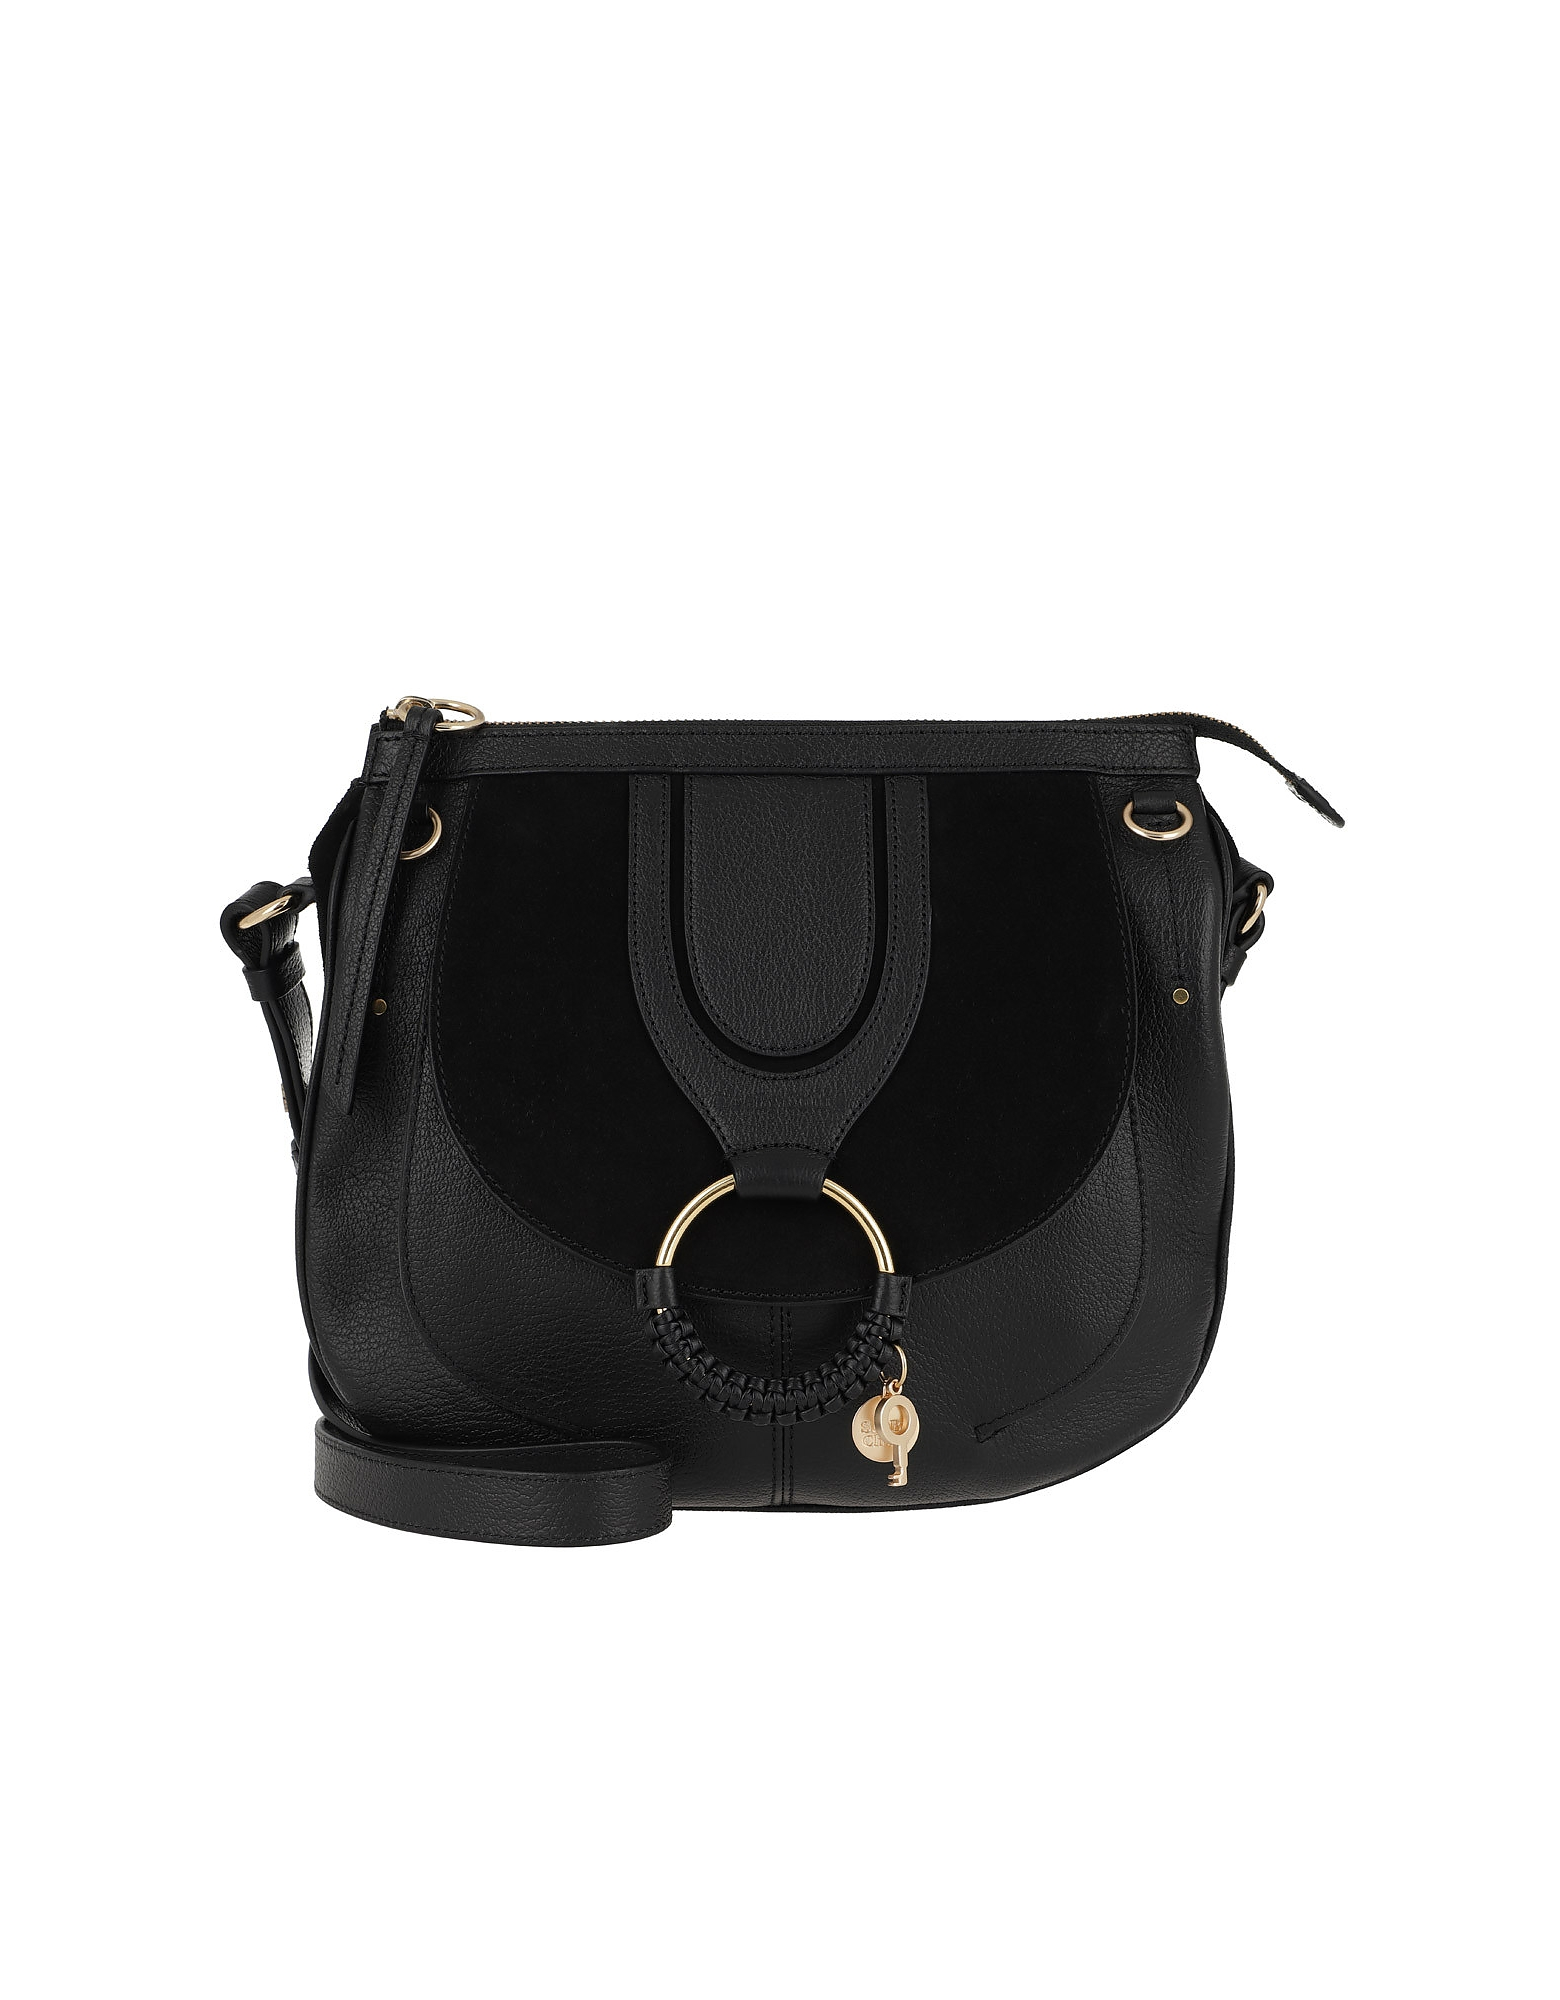 See by Chloé Handbags, Hana Hobo Bag Small Black